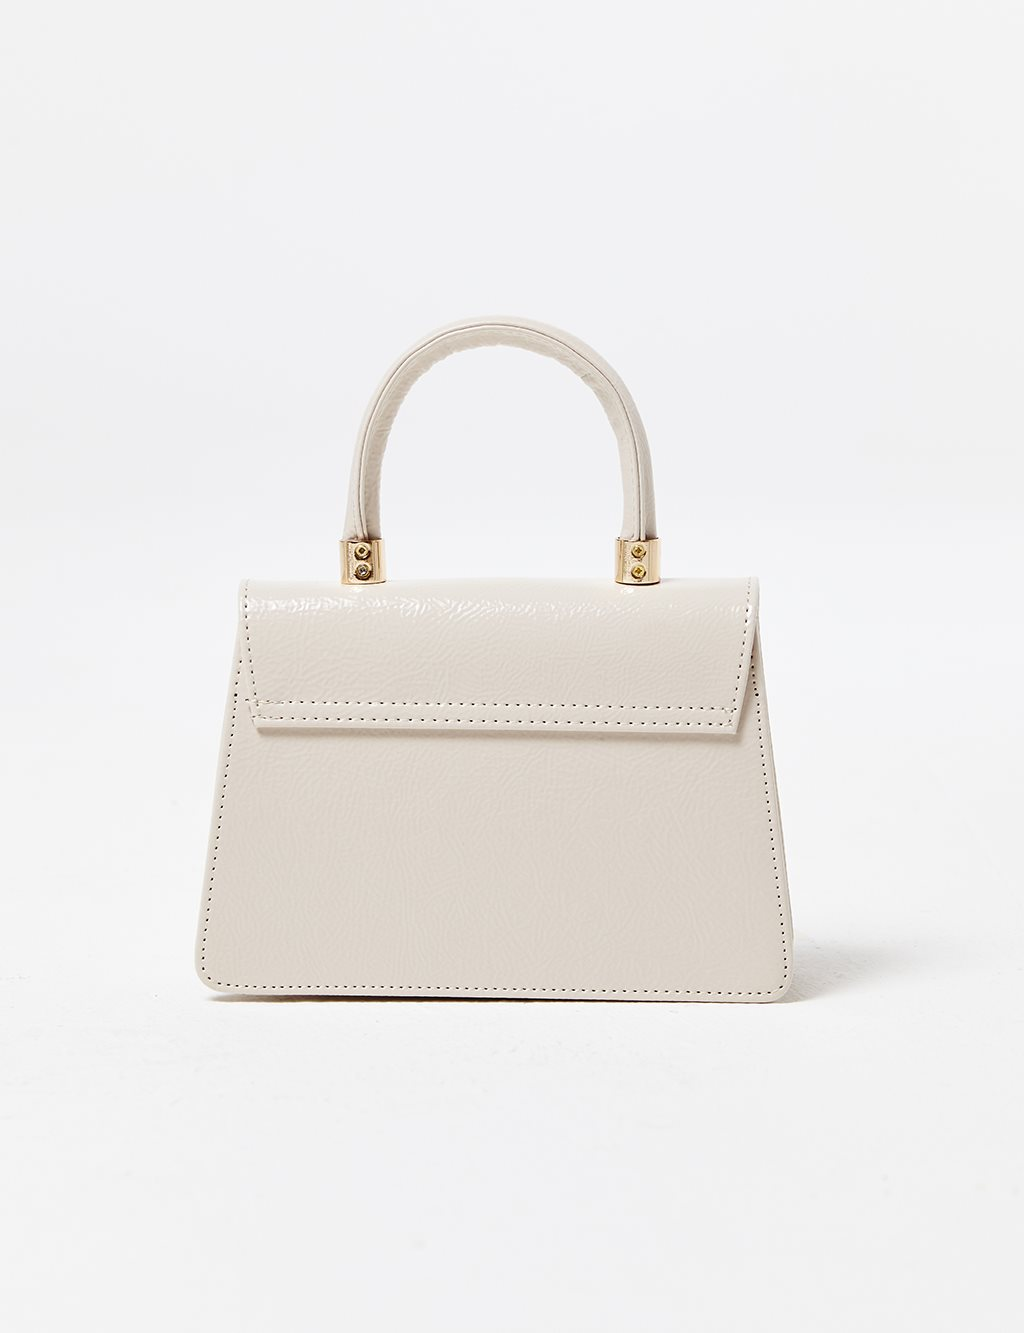 Patent Leather Bag B21 CNT06 Cream